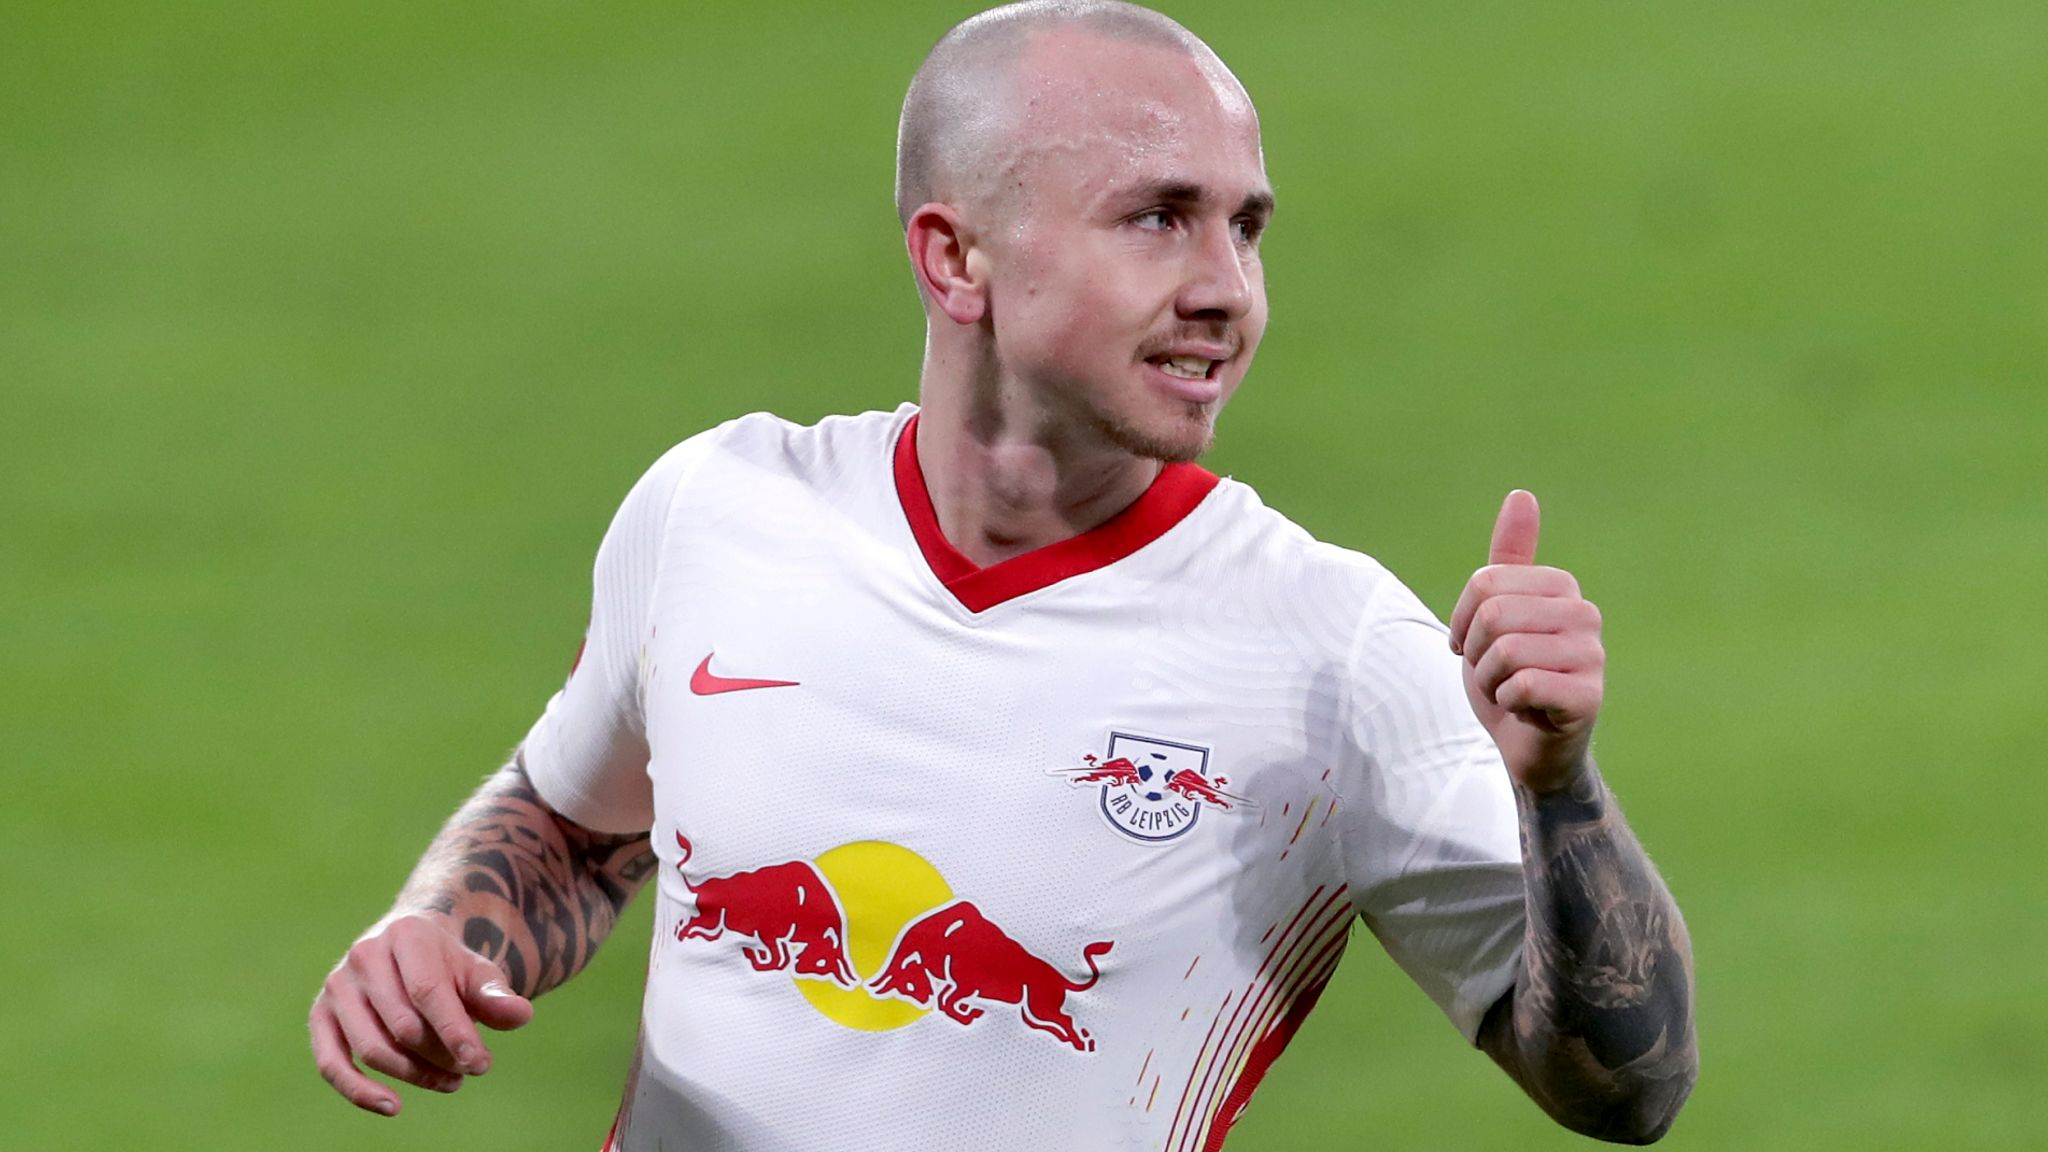 Angelino toujours indisponible